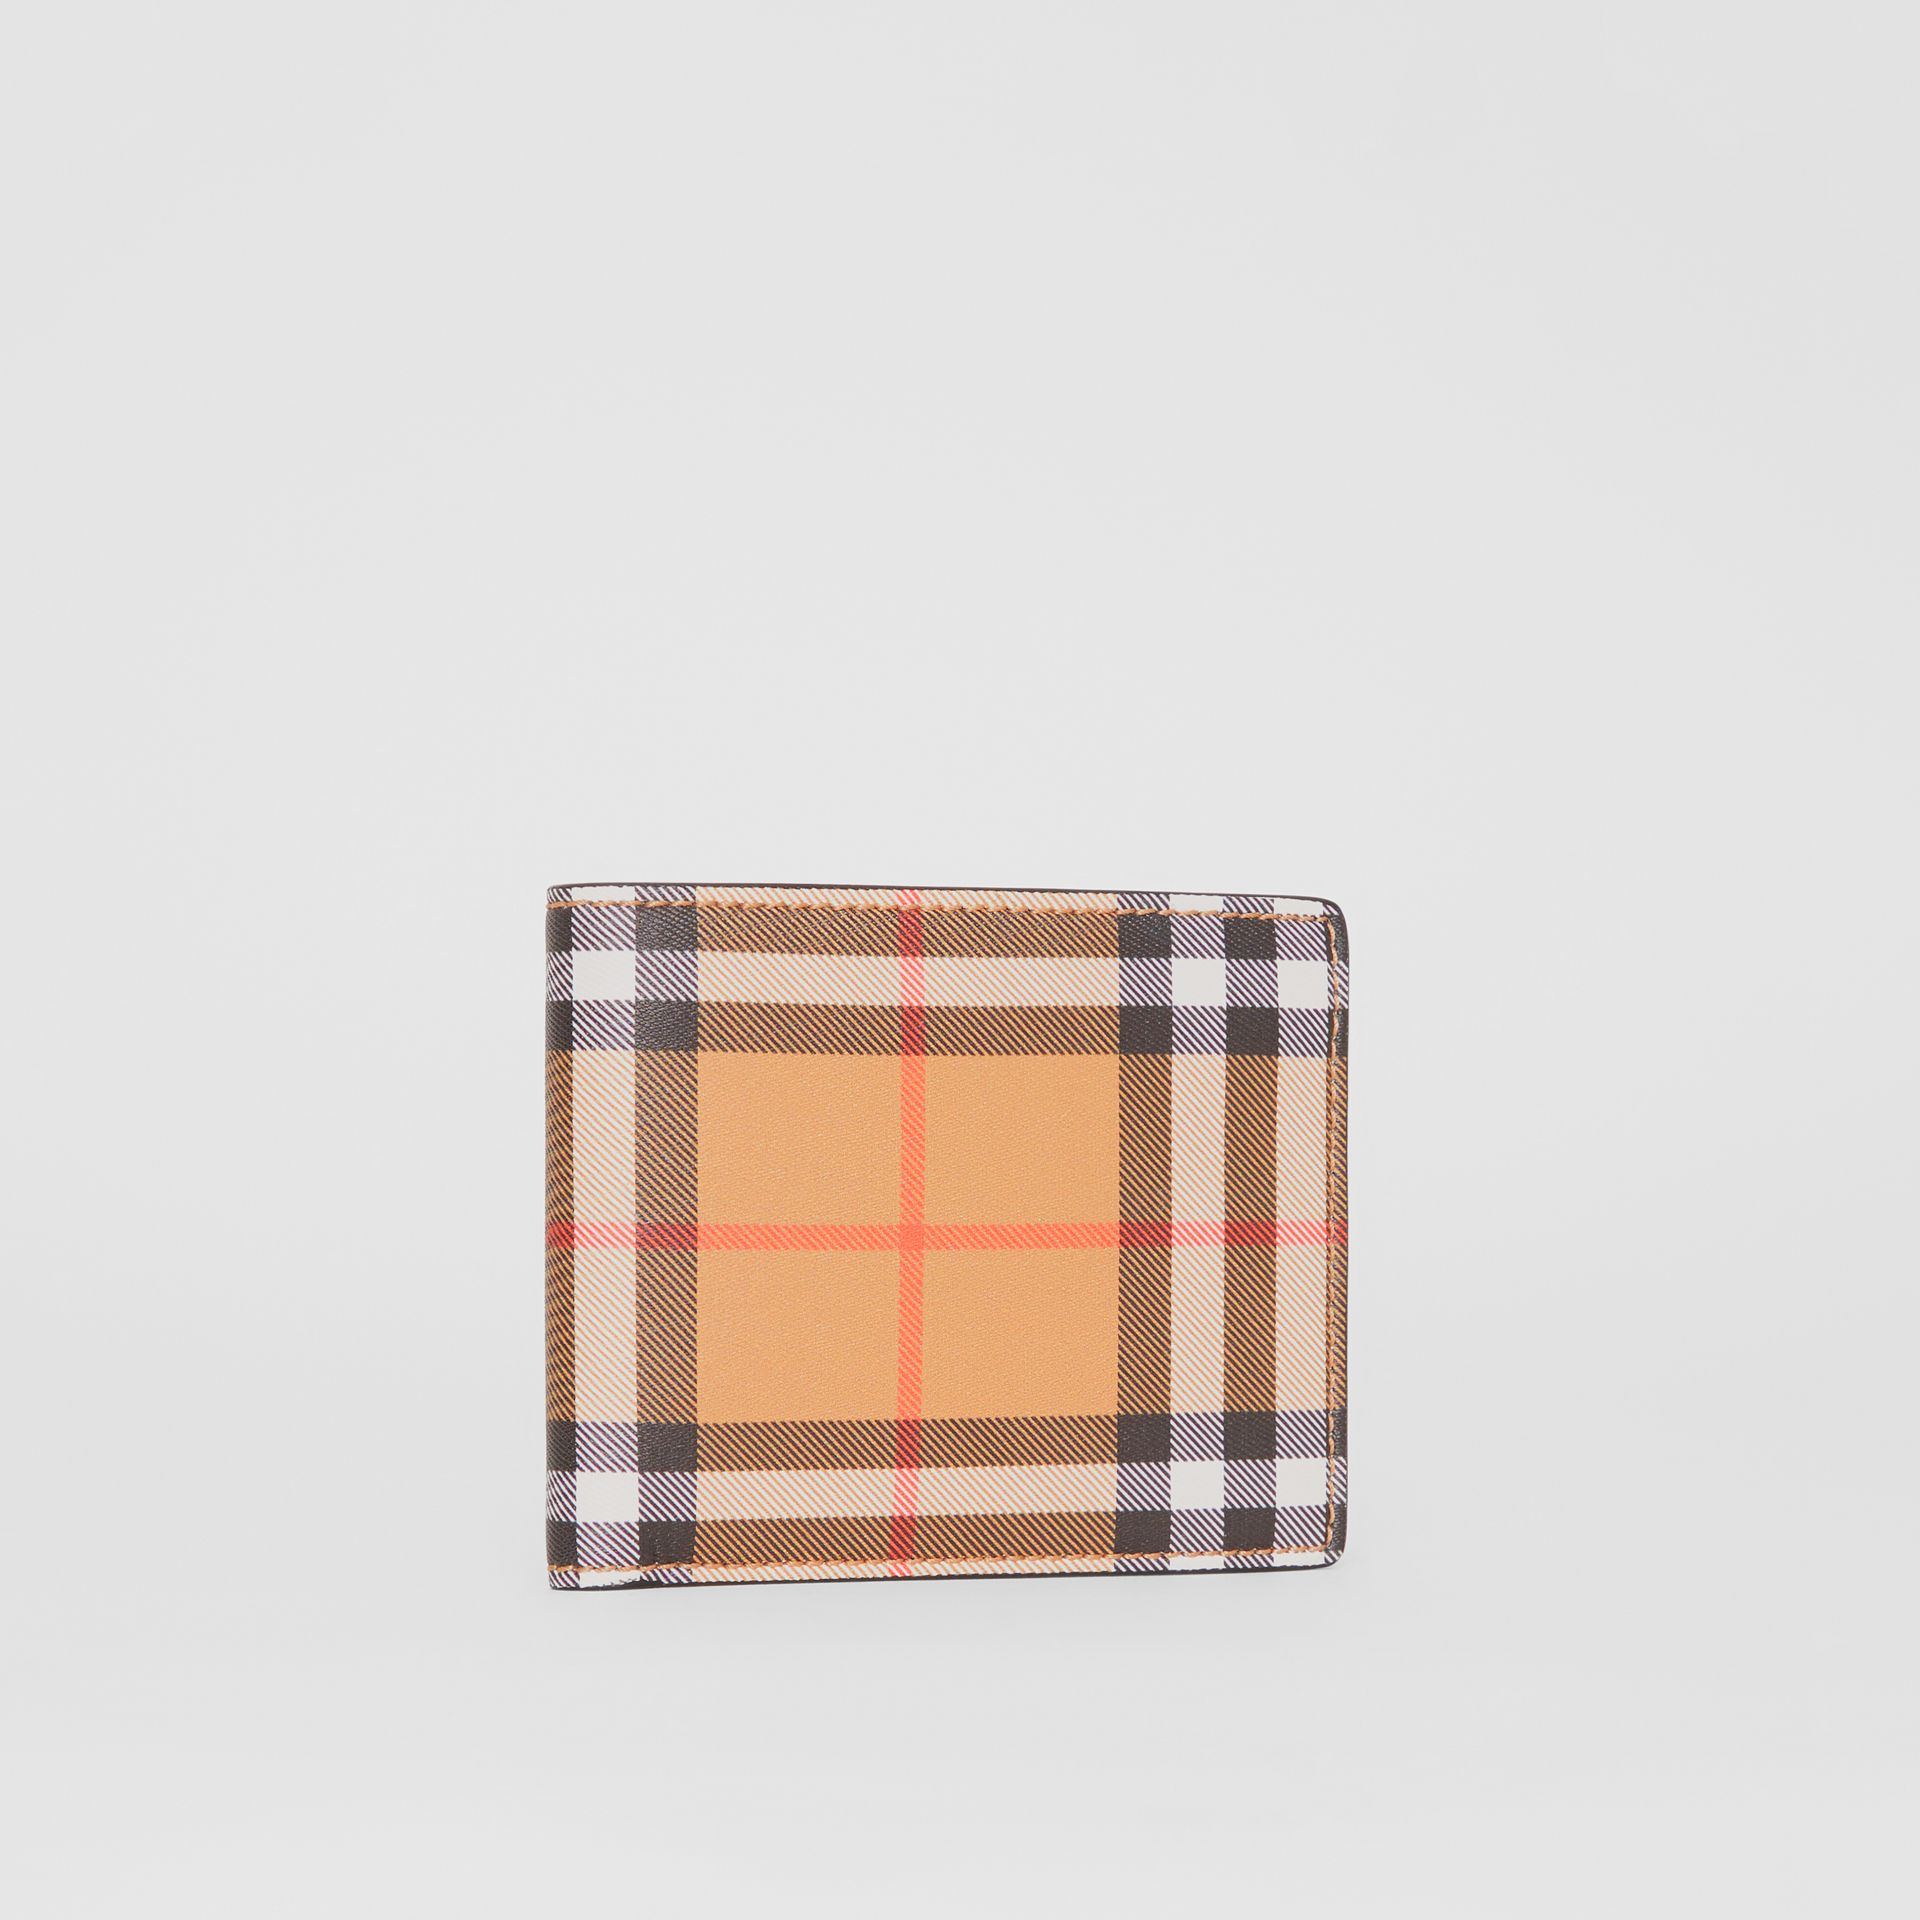 Vintage Check Leather ID Wallet in Black - Men | Burberry United Kingdom - gallery image 3